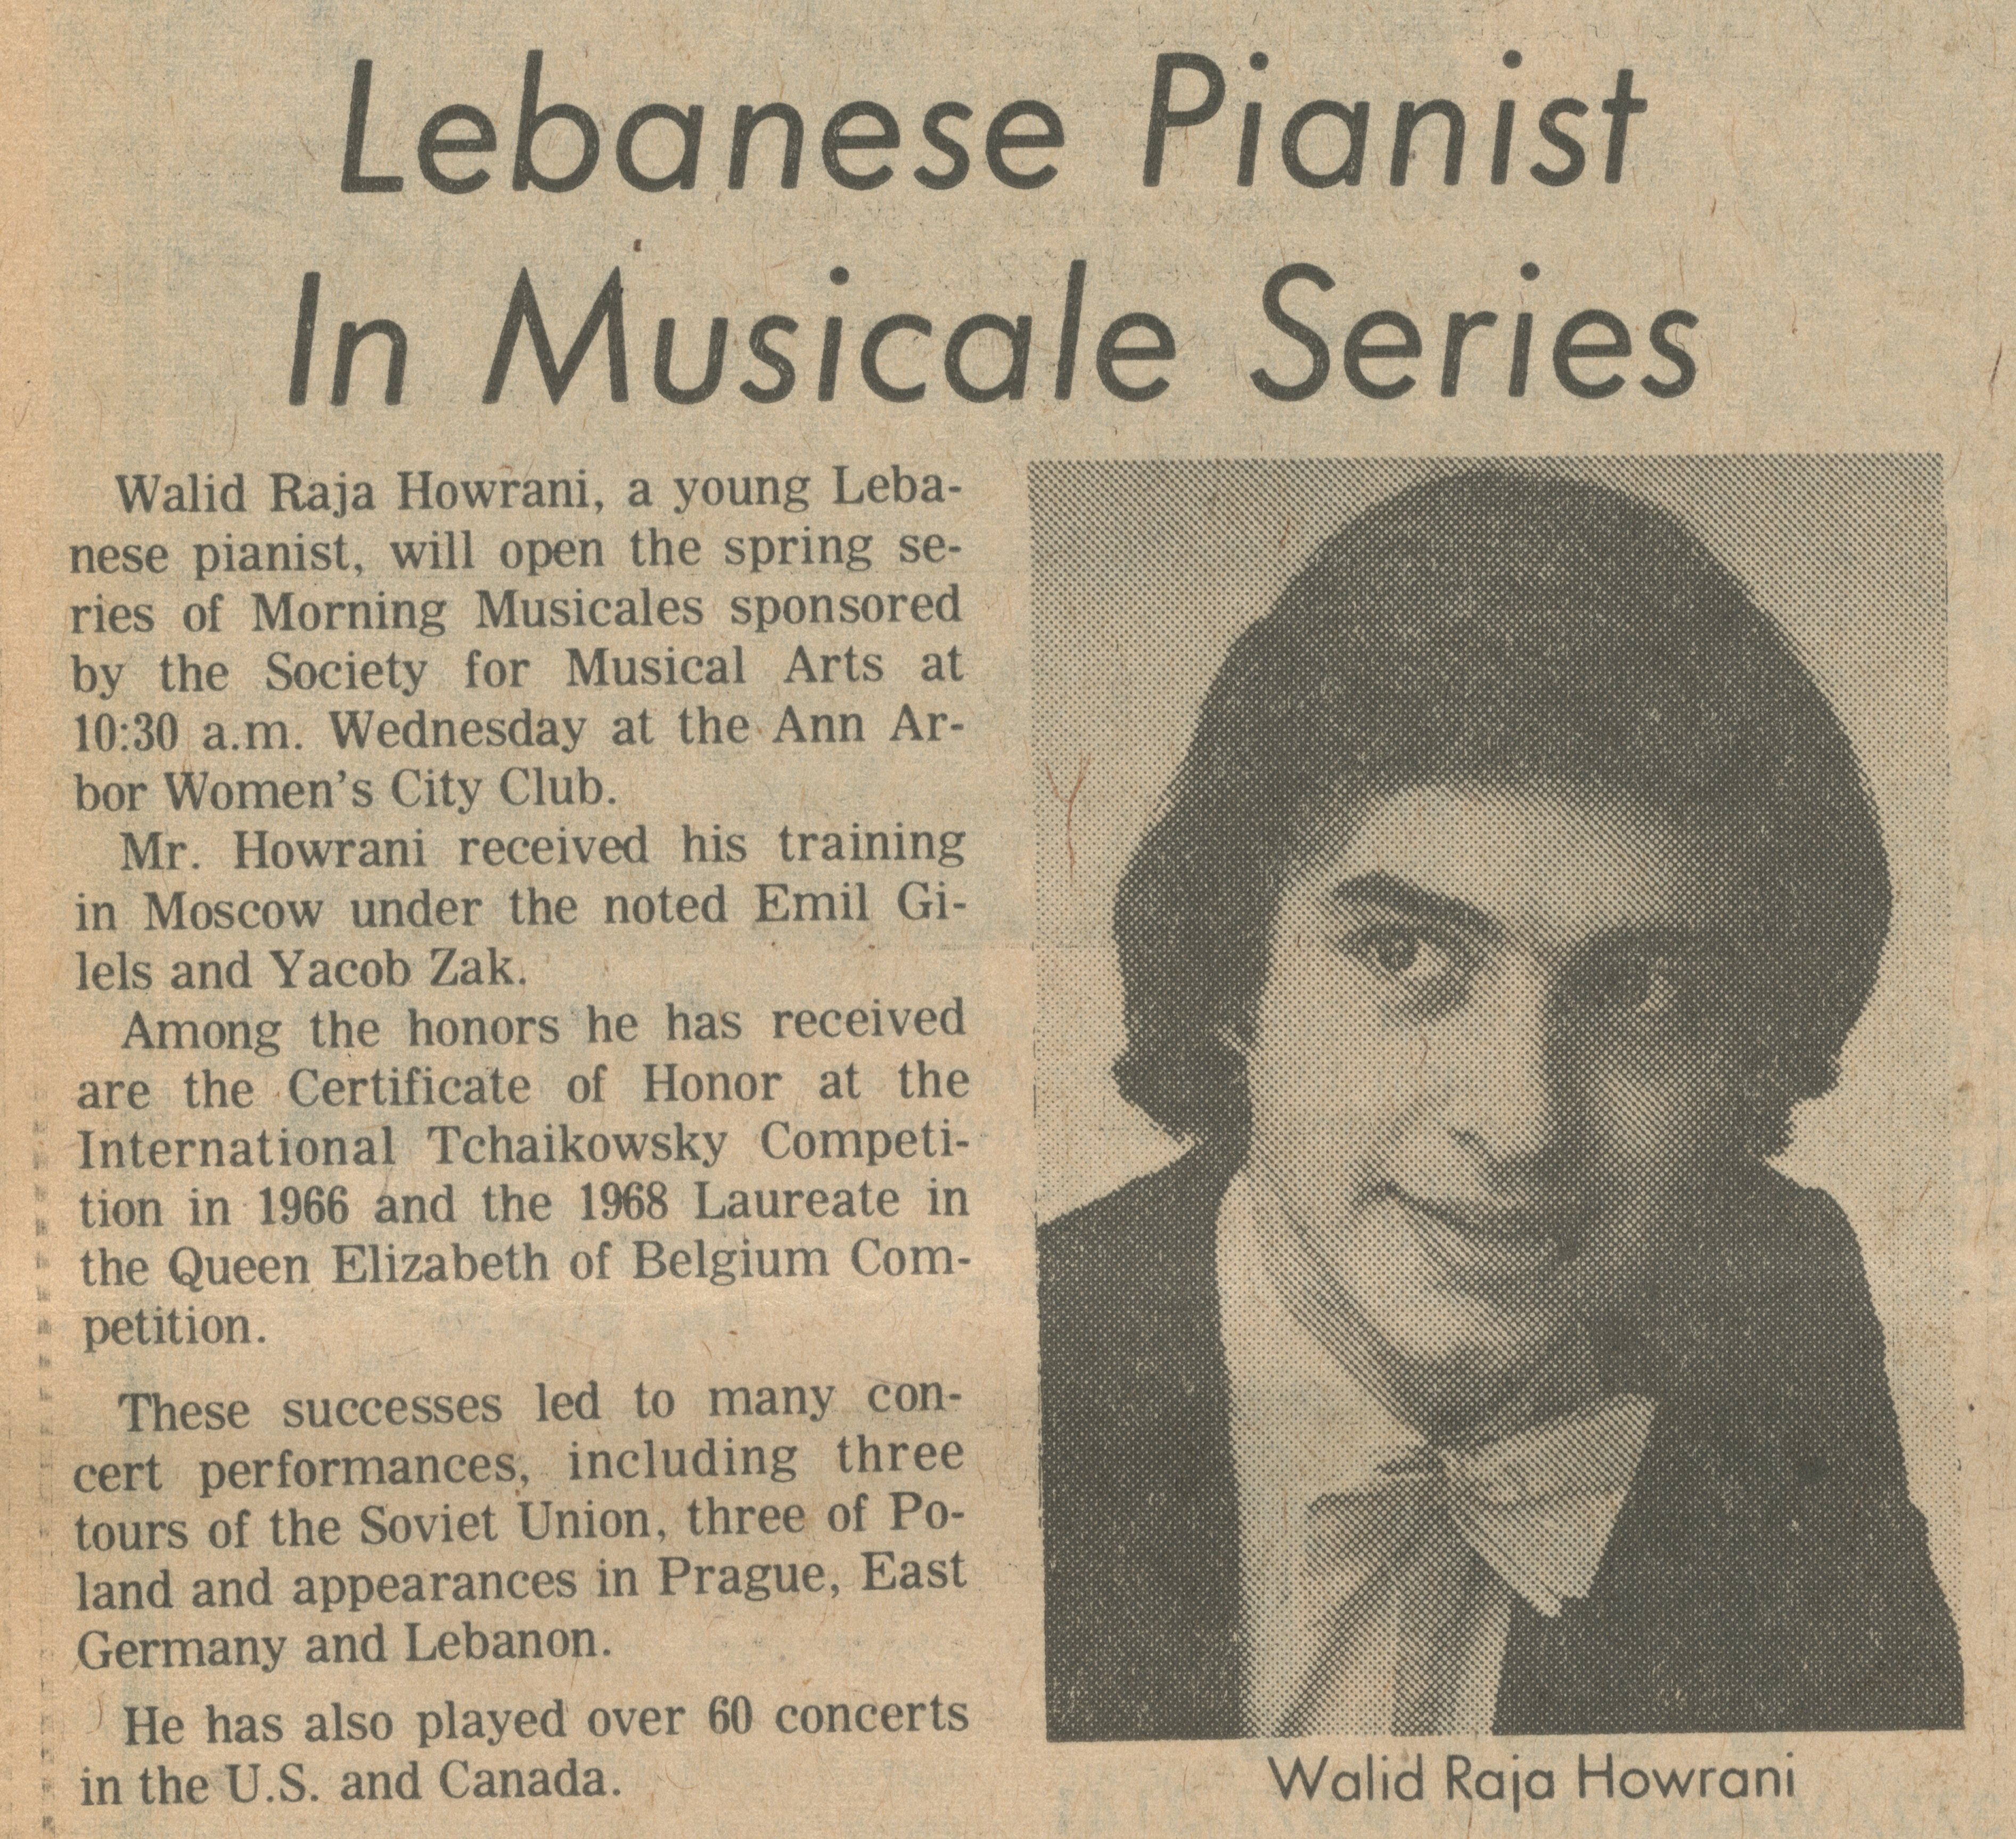 Lebanese Pianist In Musicale Series image